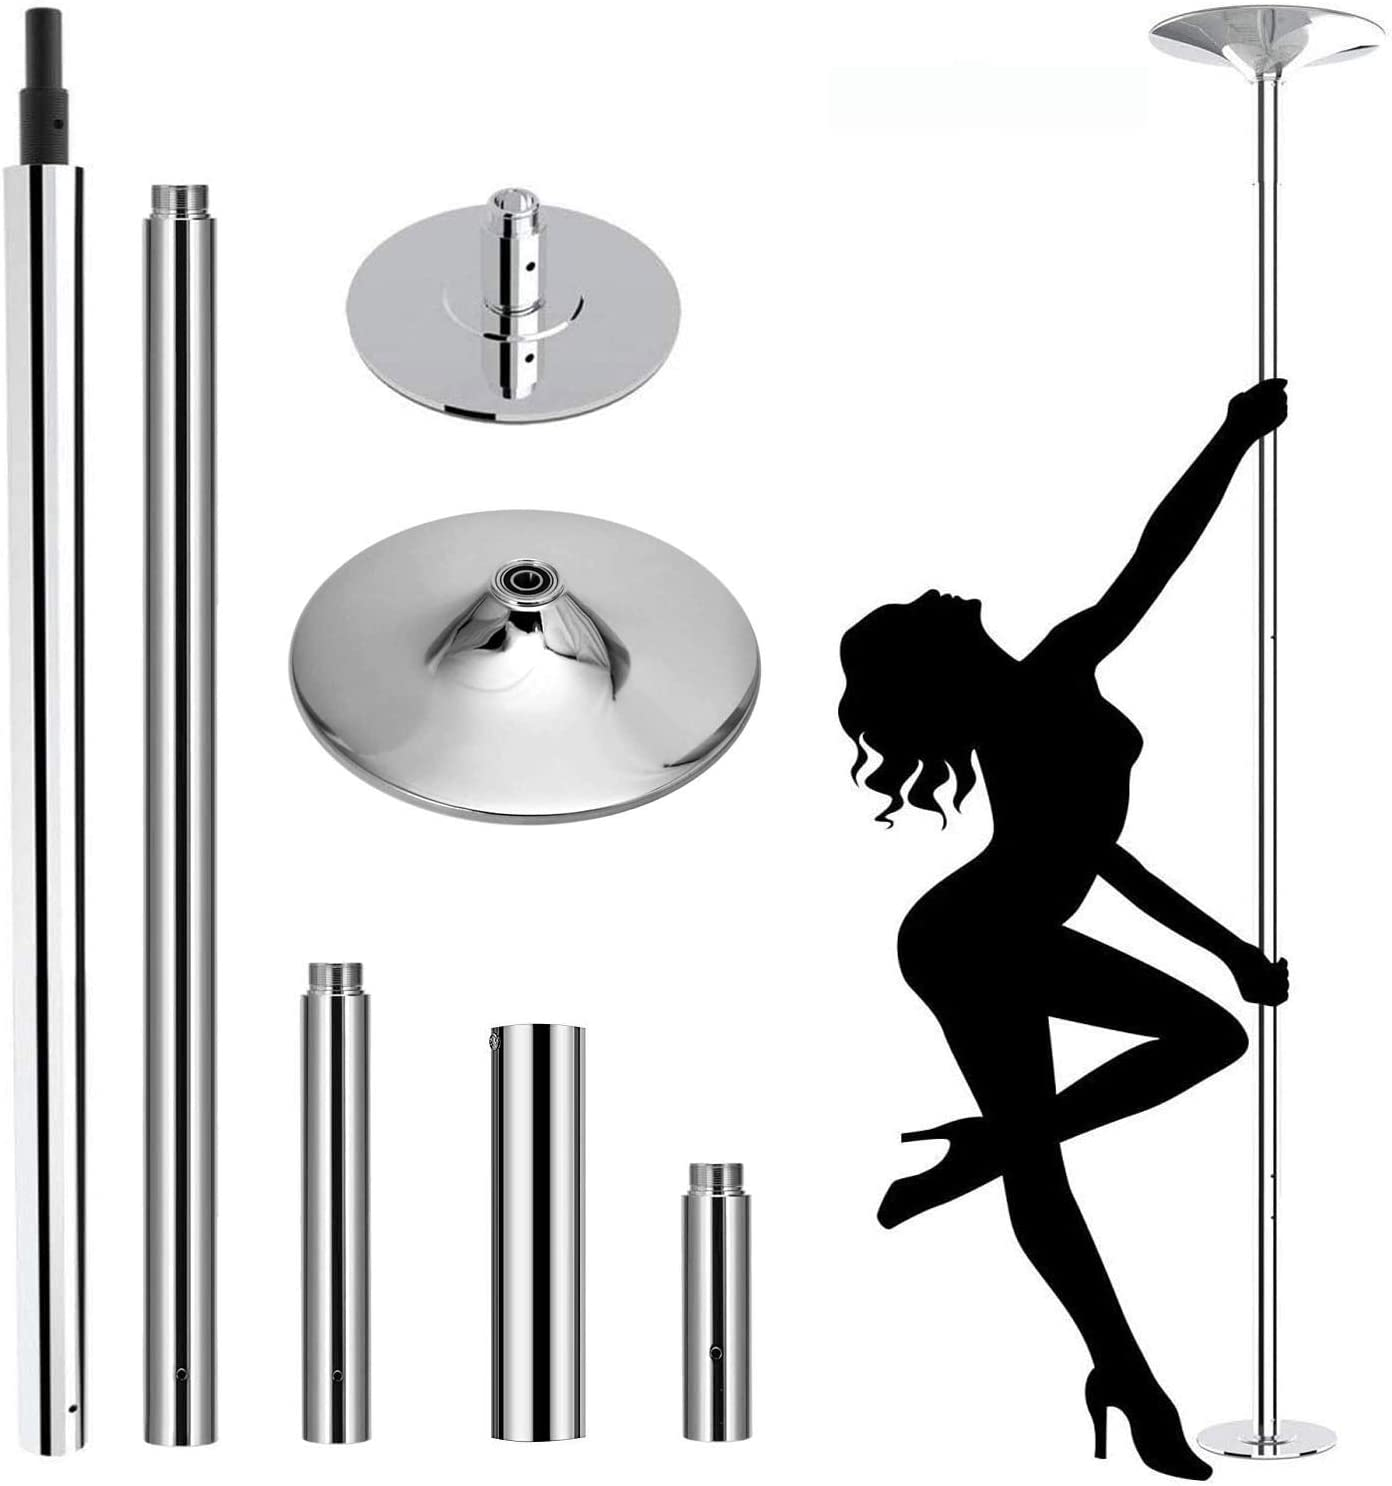 Van Alderman Dancing Pole 45mm Spinning Static Stripper Pole, Portable Removable Dance Pole Kit w/Tools for Beginner Professional Fitness Exercise Club Party Pub Home Gym